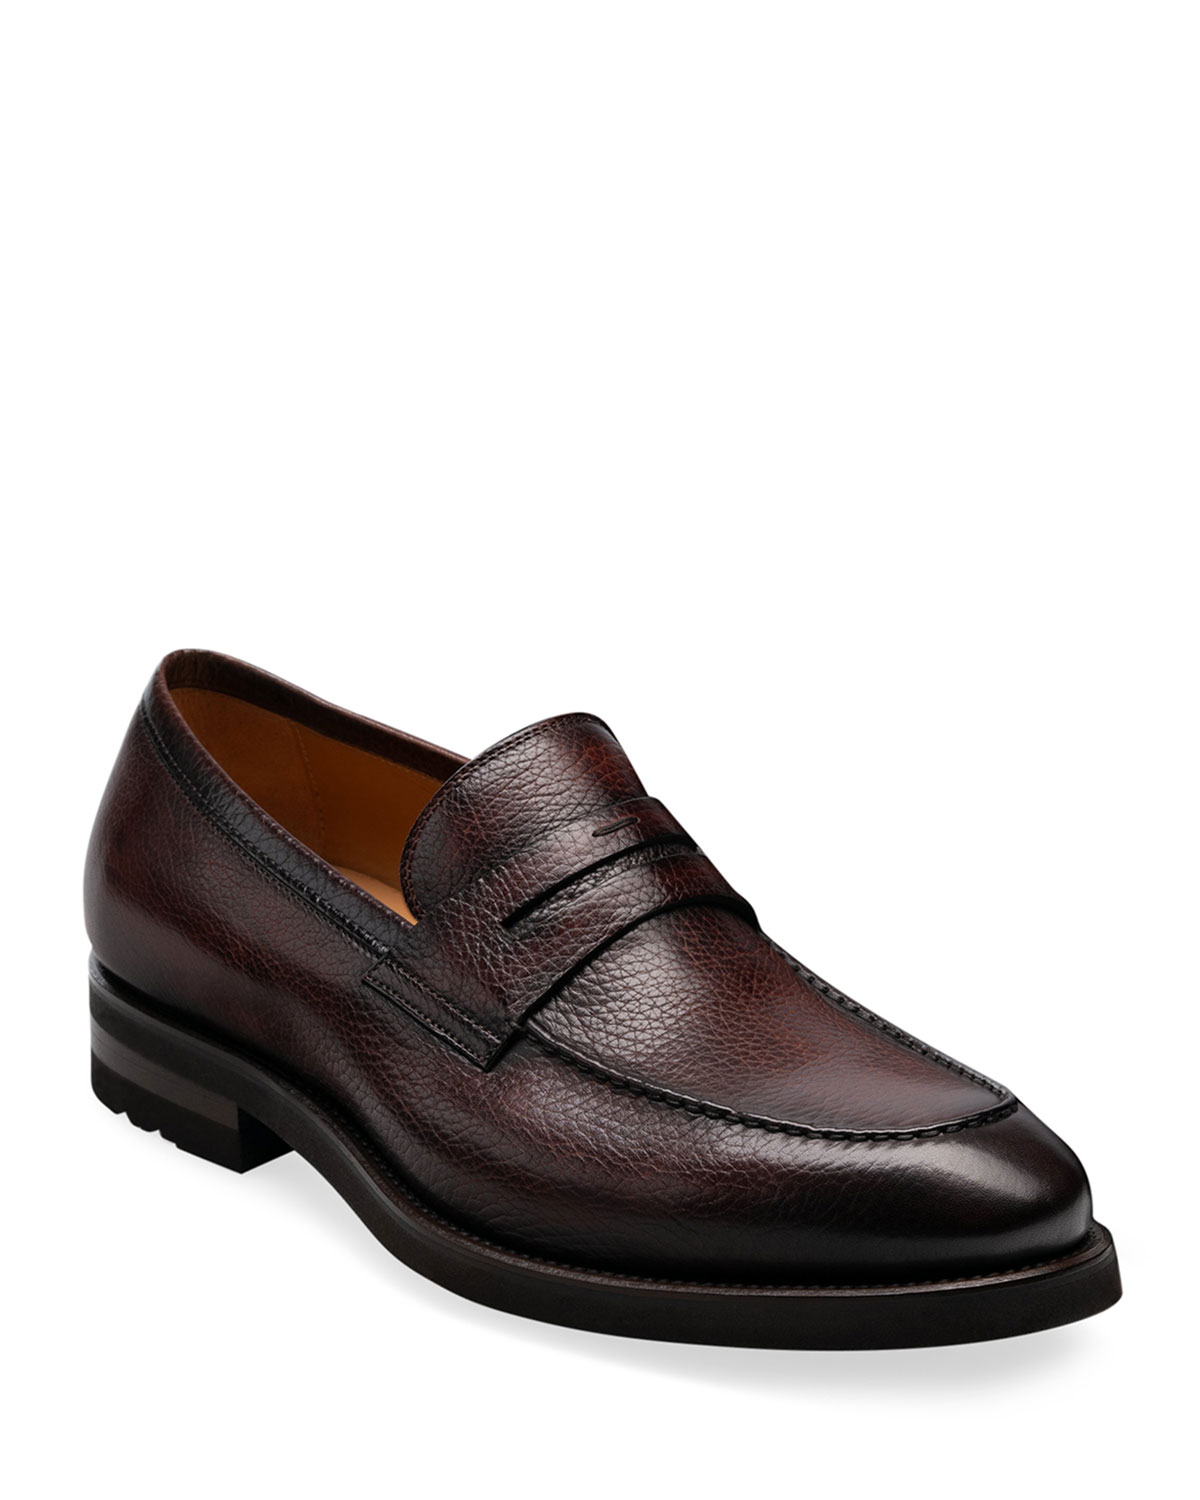 mens-matlin-ii-pebbled-leather-penny-loafers by magnanni